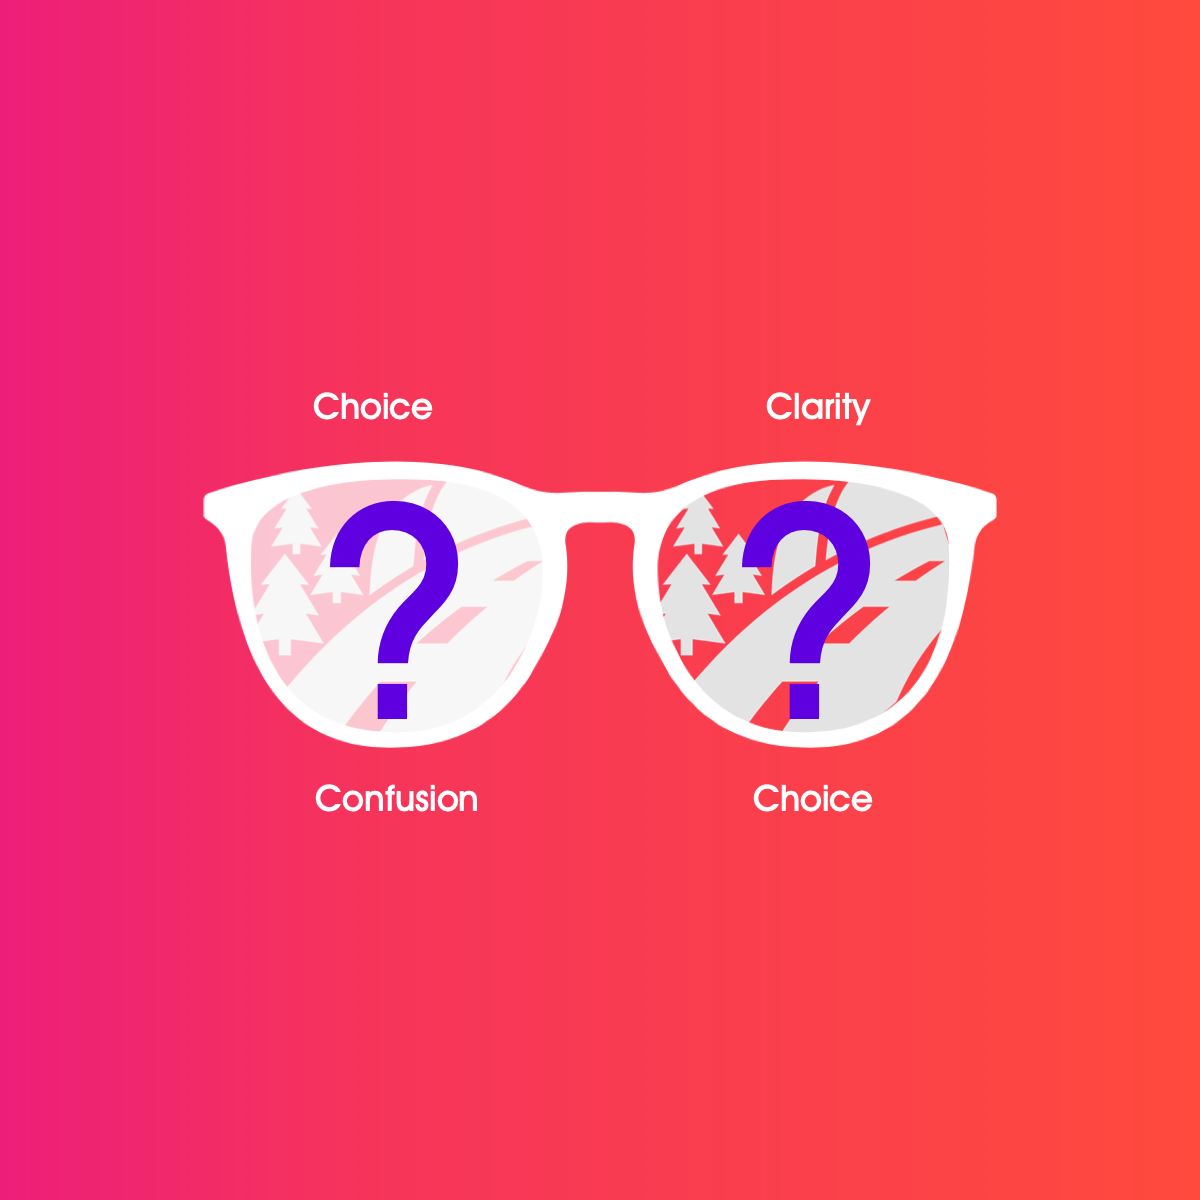 Clarity or Confusion – it's a choice we can all make